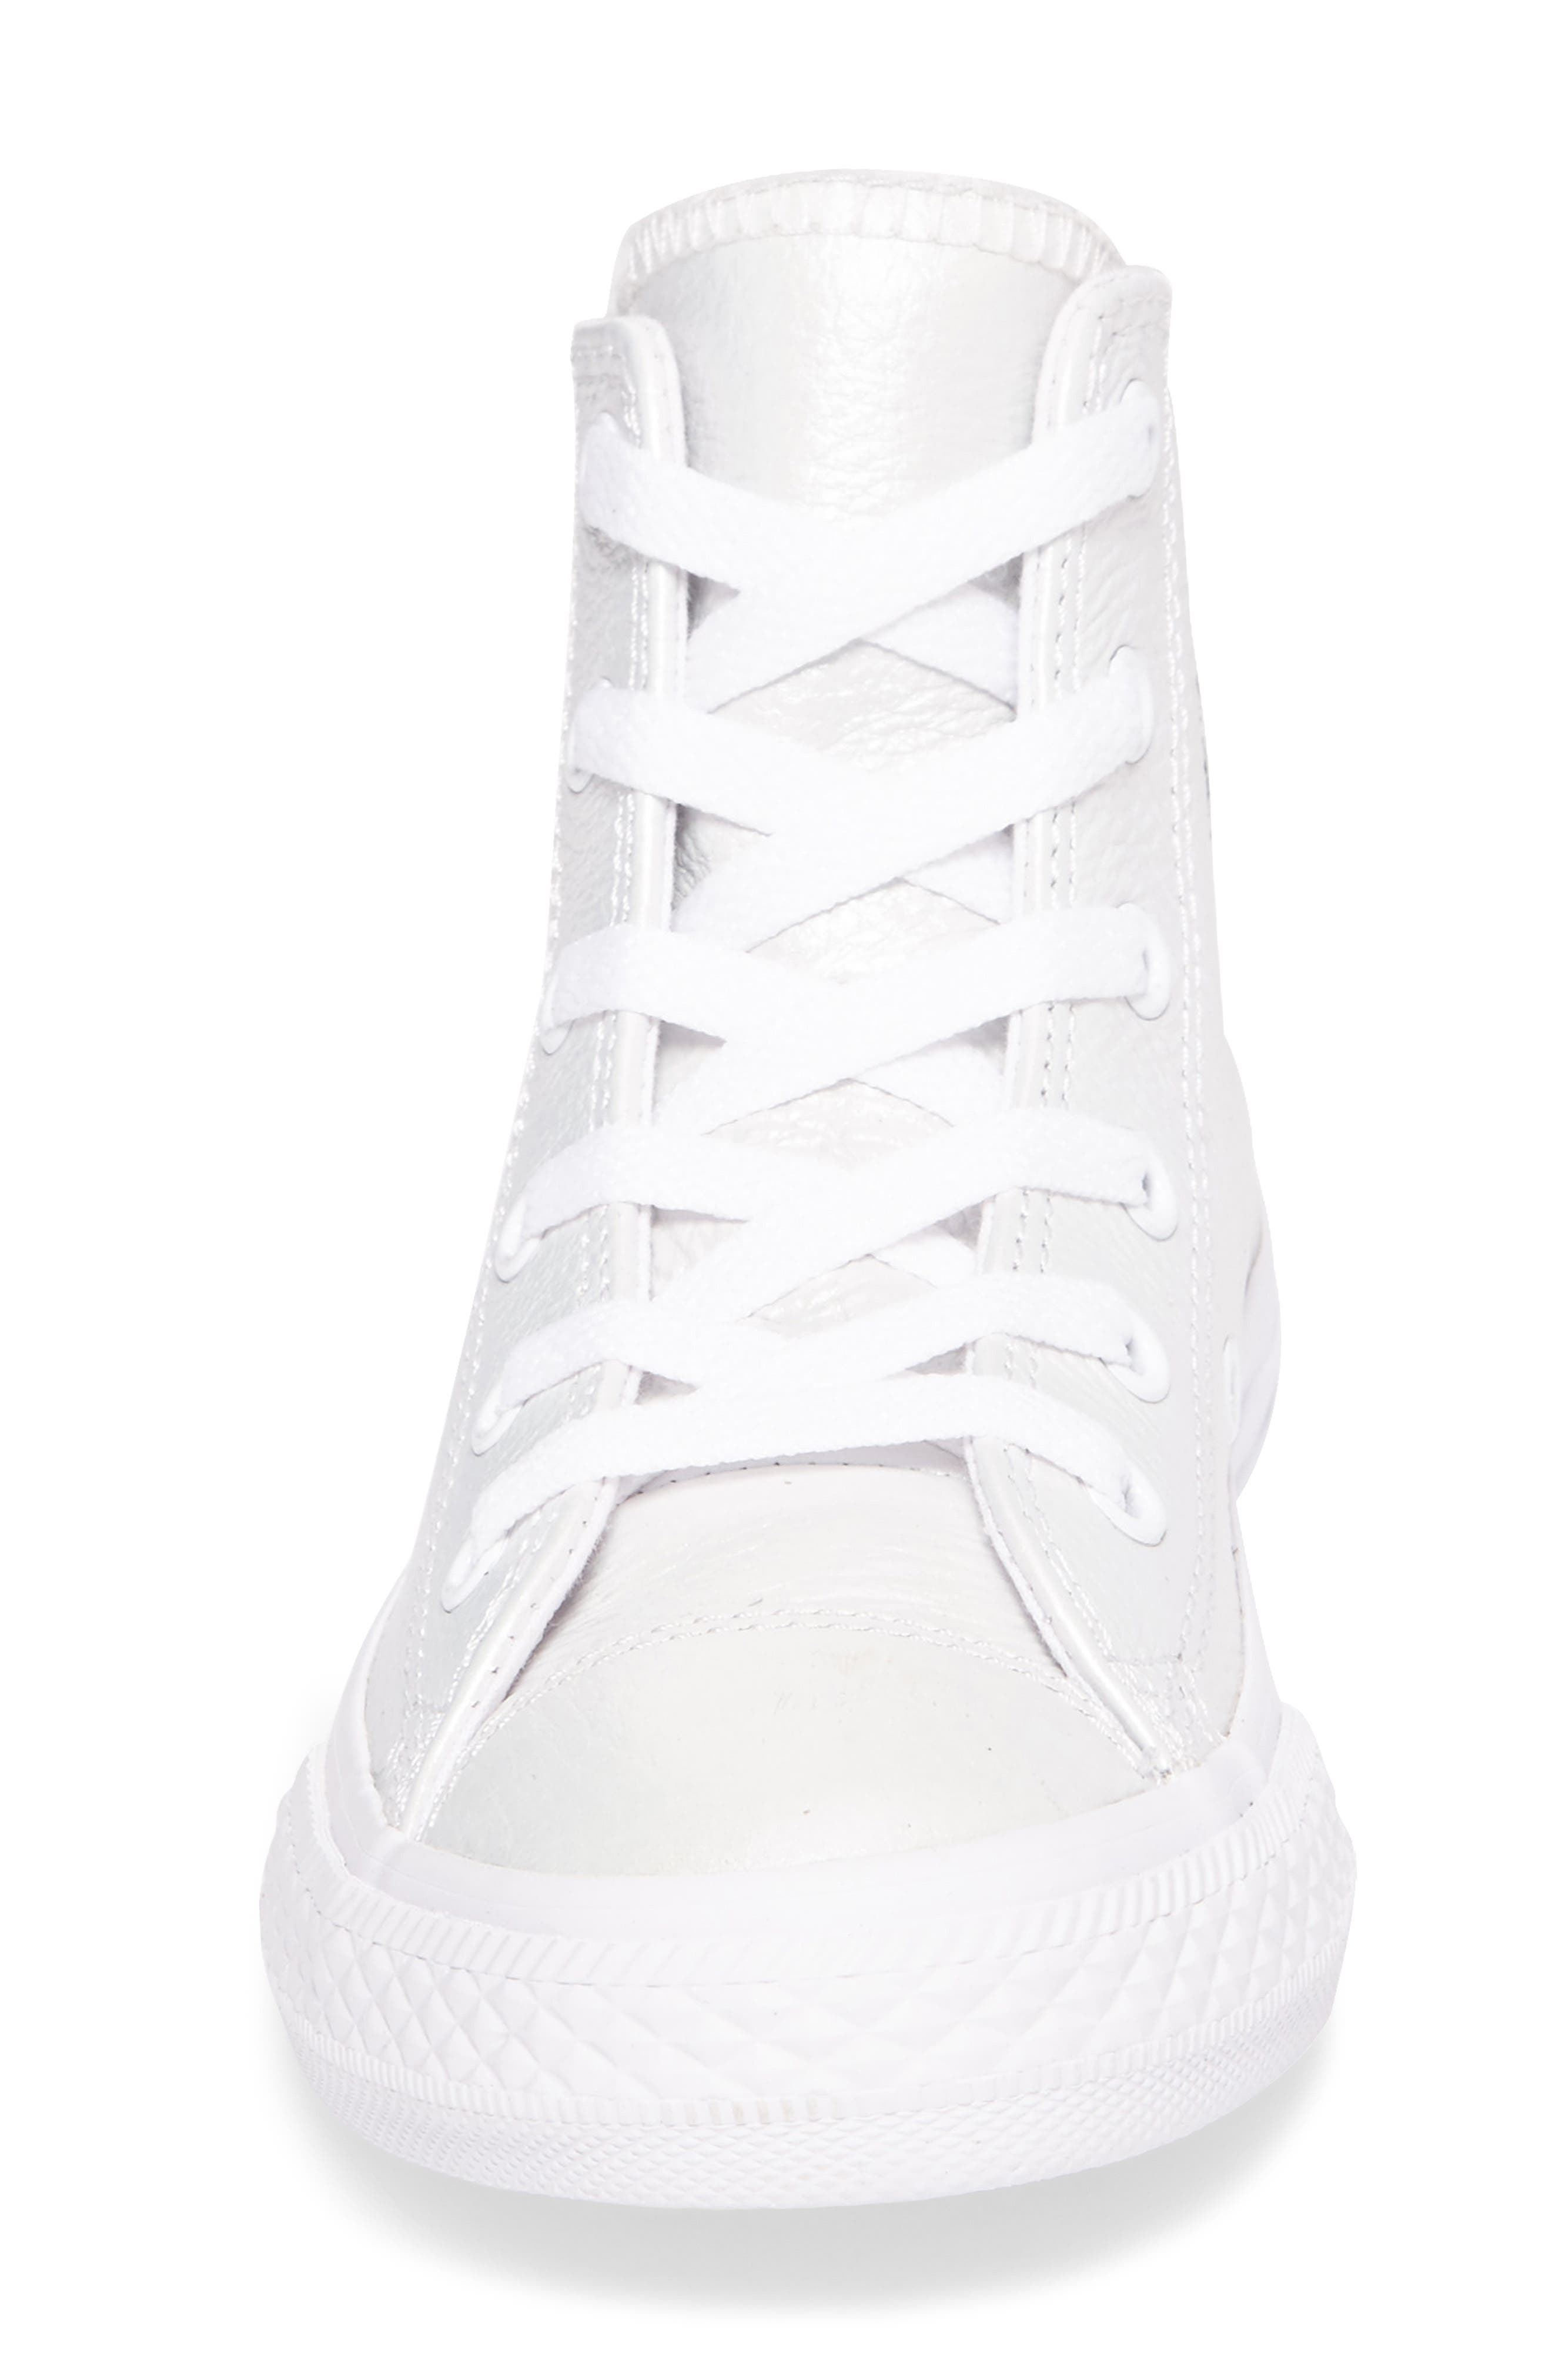 Chuck Taylor<sup>®</sup> All Star<sup>®</sup> Iridescent Leather High Top Sneaker,                             Alternate thumbnail 4, color,                             White Leather